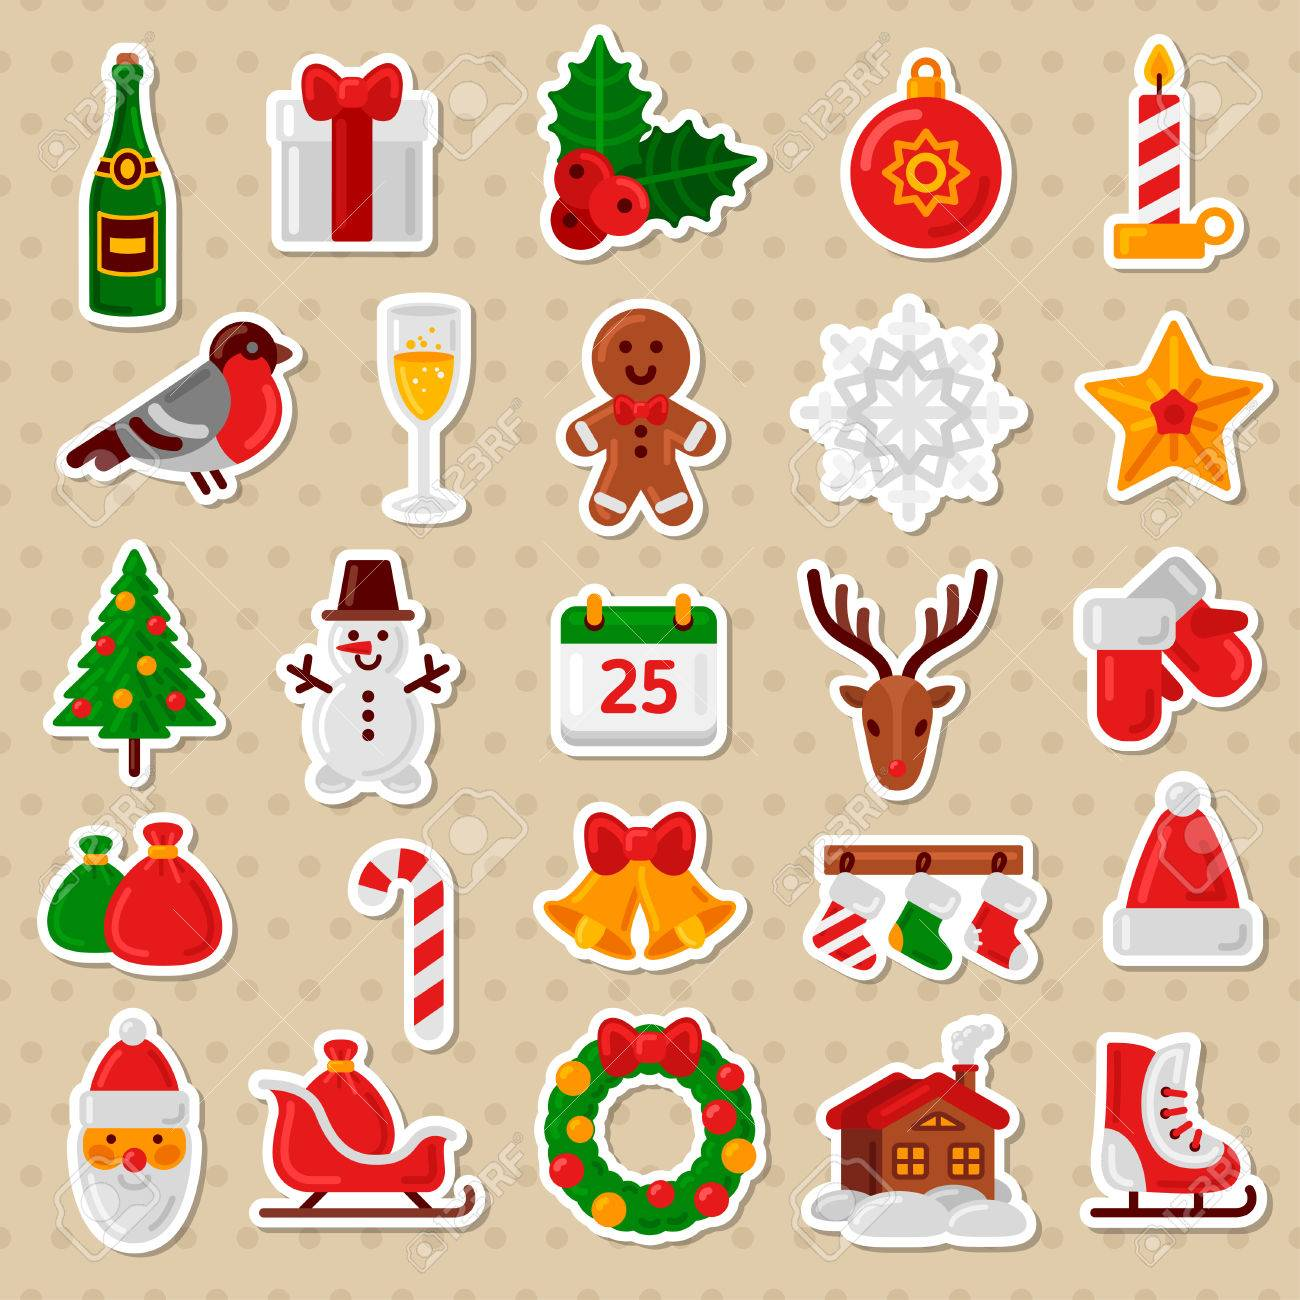 Candy Cane Christmas Tree.Merry Christmas Flat Icons Vector Illustration Happy New Year